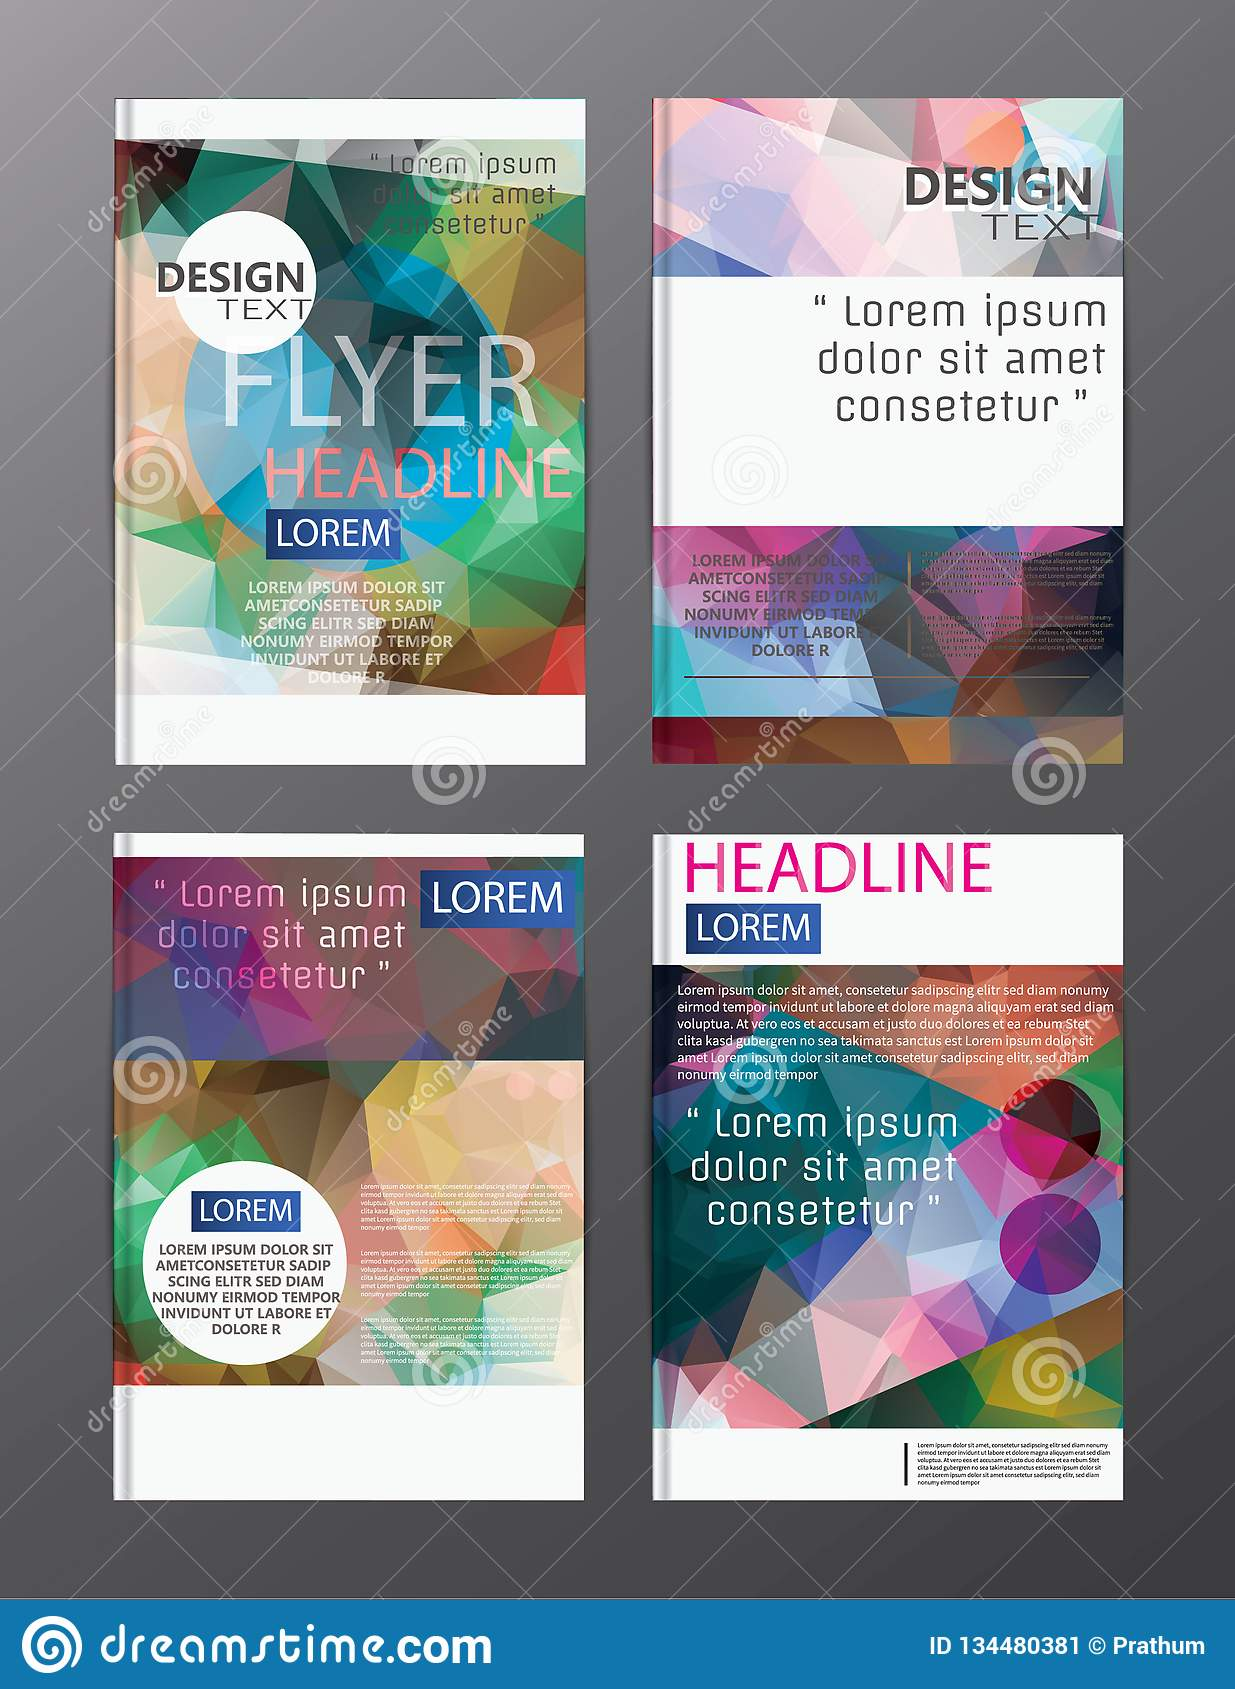 Flyer design business annual report brochure template. cover presentation abstract background for business, magazines